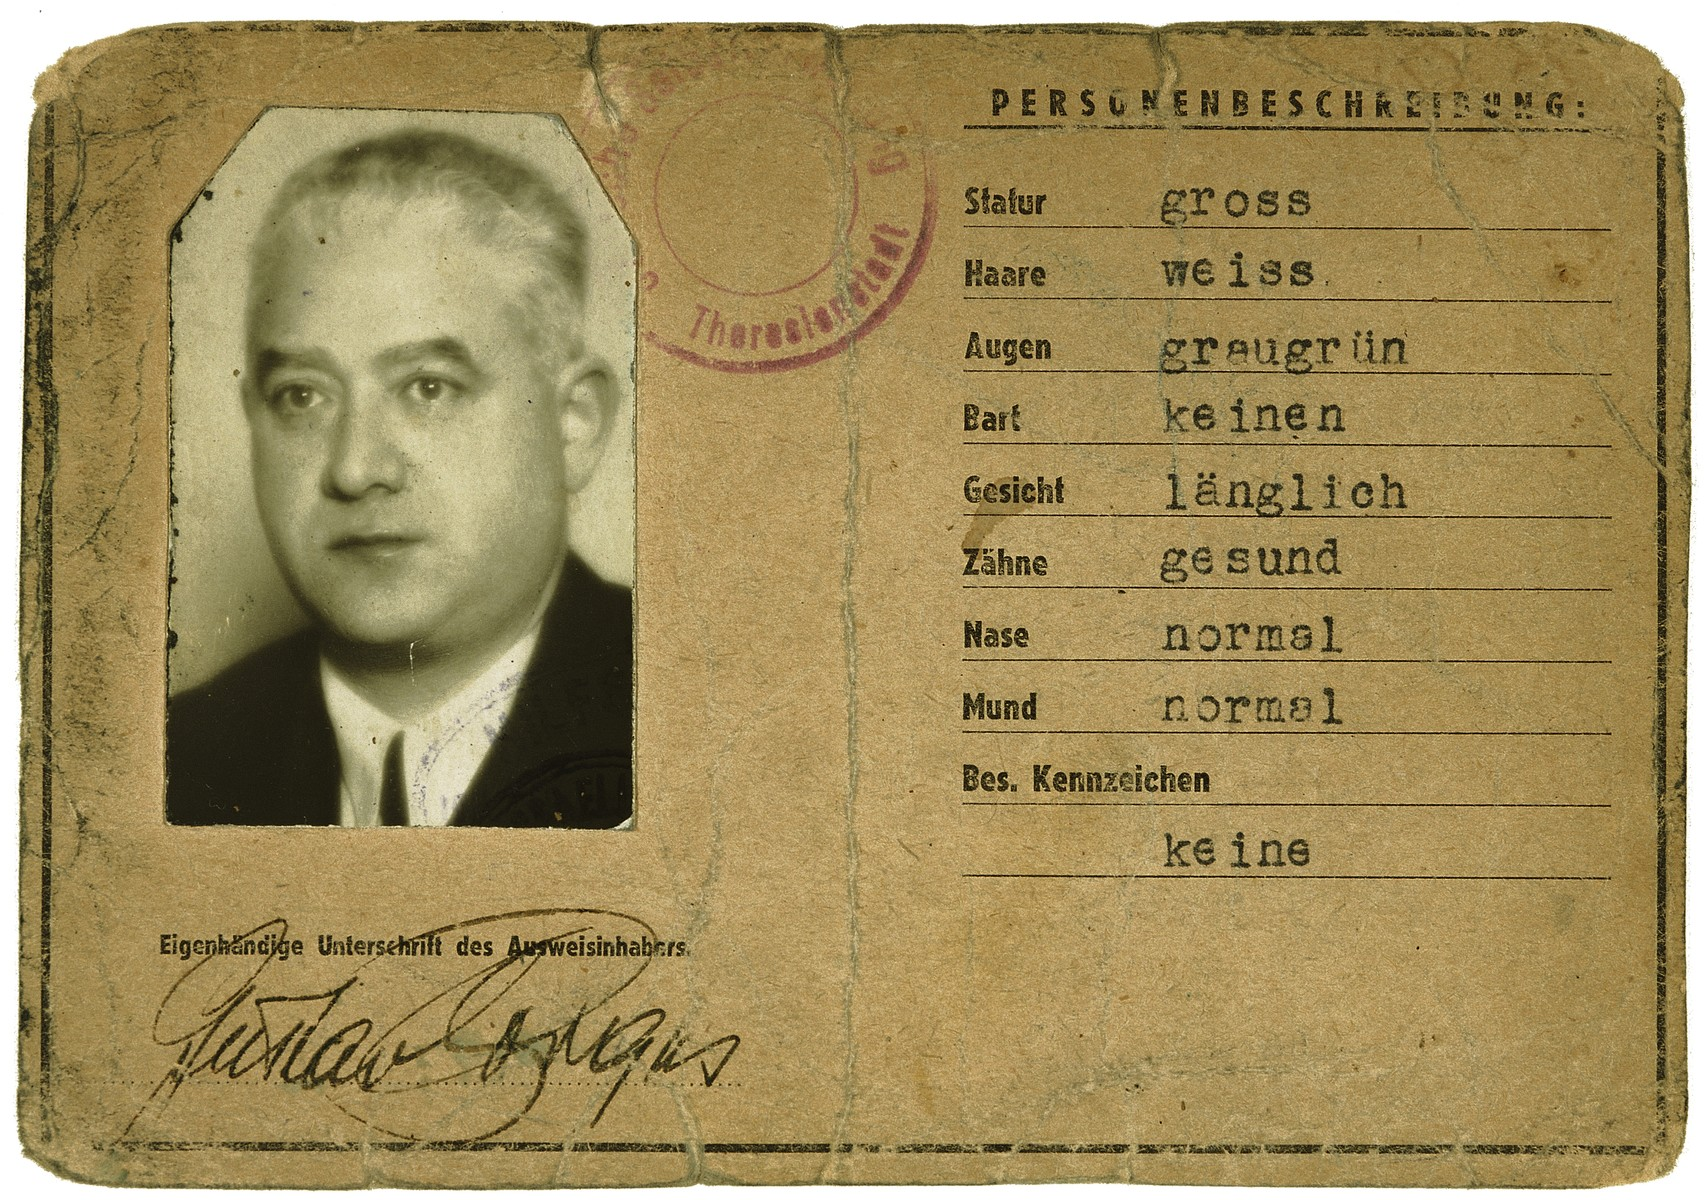 Identification card issued in the Theresienstadt concentration camp to Gustav Porges.